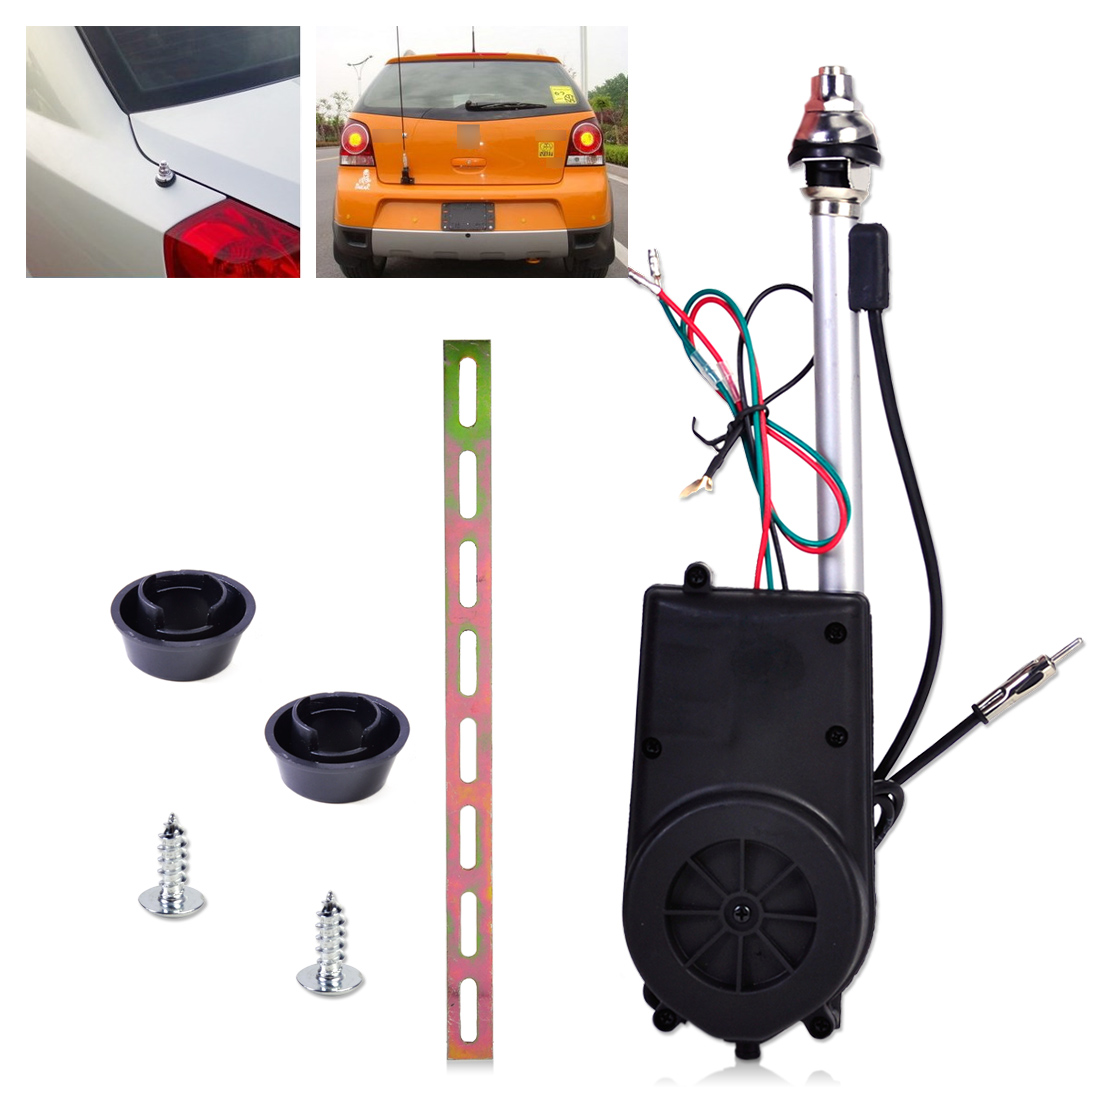 Universal 12V Car Aerial Automatic Power Antenna Replacement Kit FM Radio Mast Signal Booster for Volkswagen Toyota Mazda am fm radio car automatic power booster antenna mast kit auto aerial for mercedes toyota jeep kia vw audi ford focus mk2 mk3